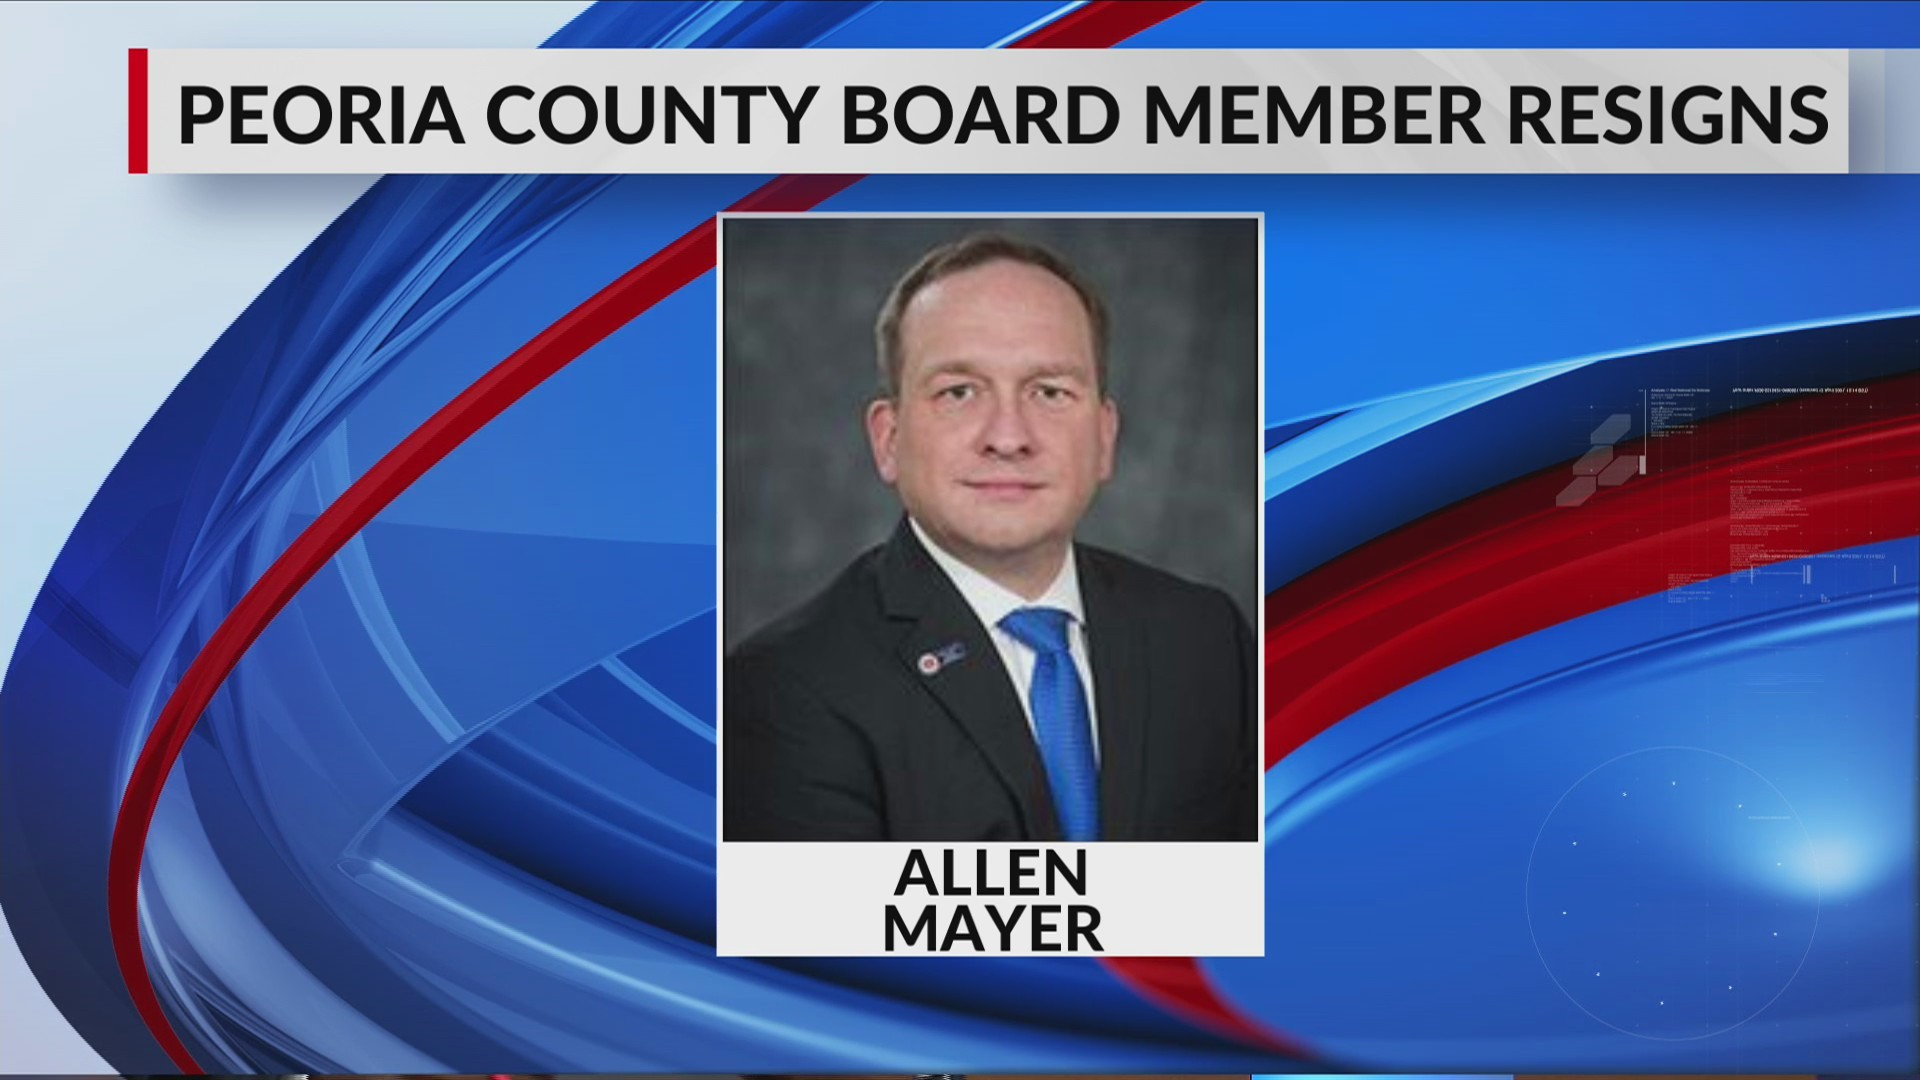 allen Mayer resigns